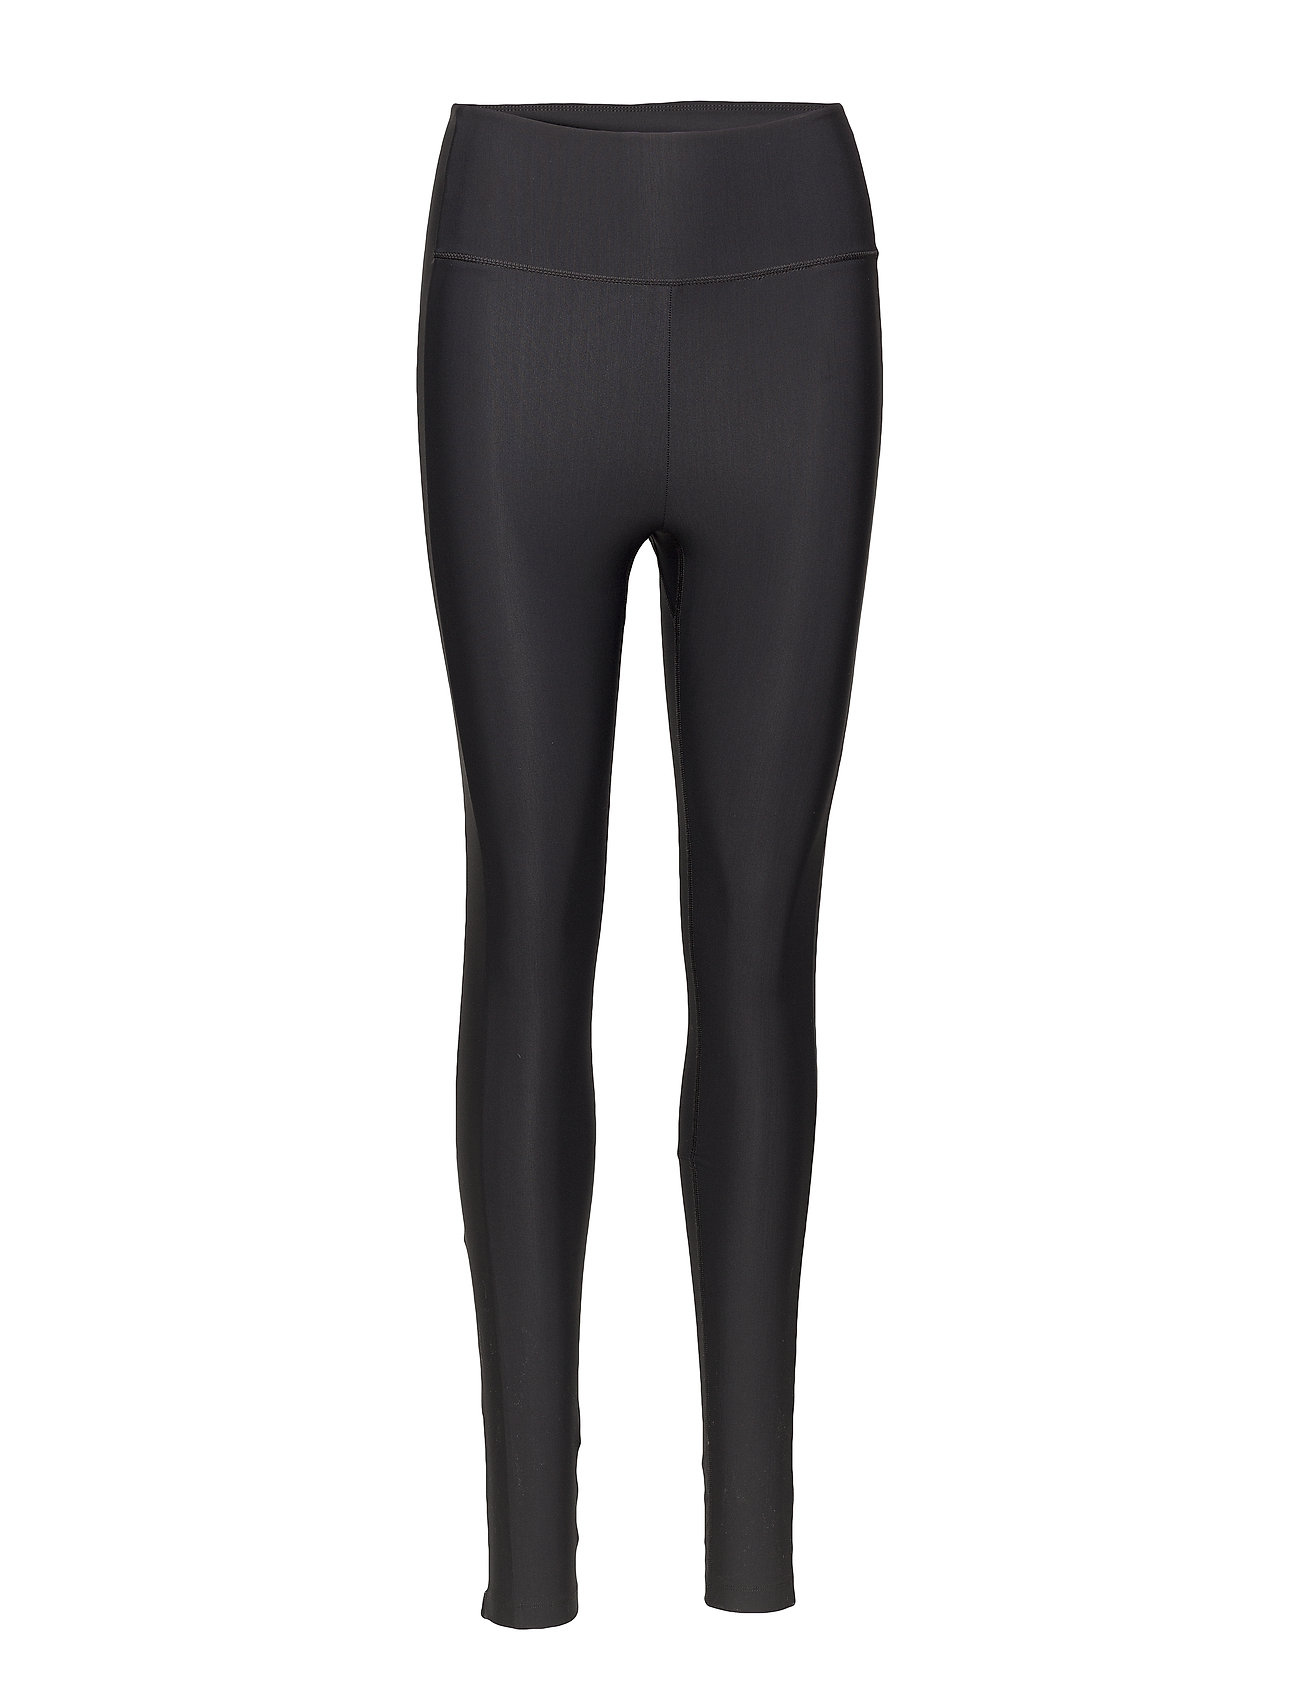 Filippa K Soft Sport Compression Zip Legging - BLACK